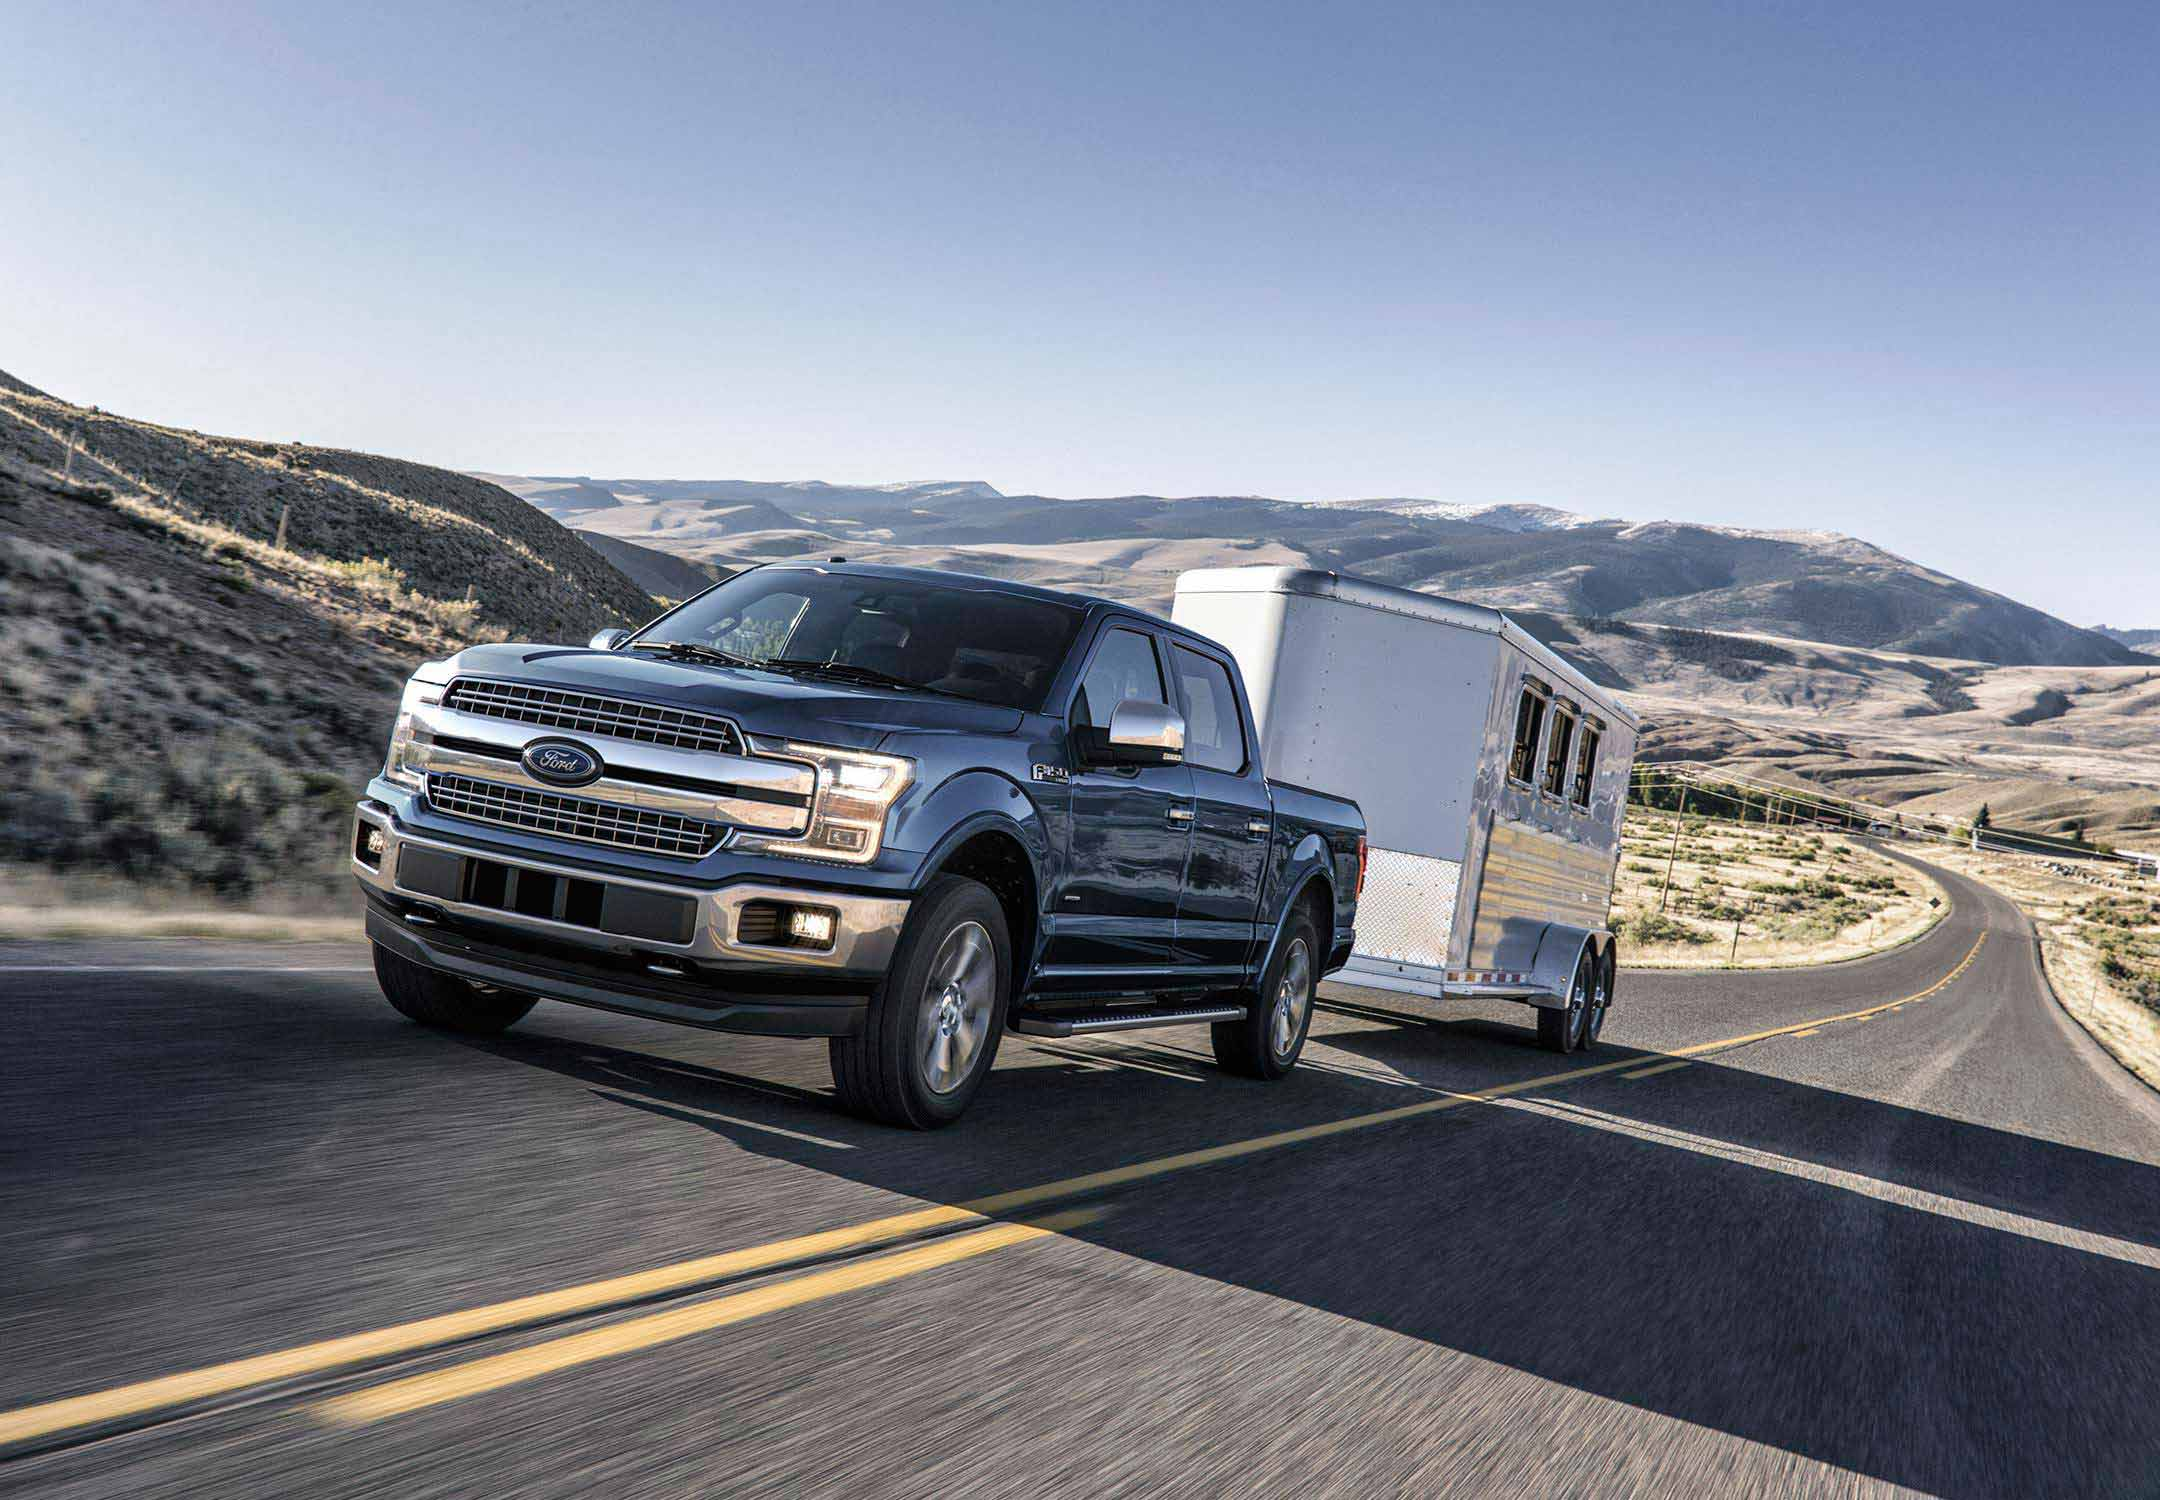 25 Exciting Facts We Know About The 2021 Ford F-150